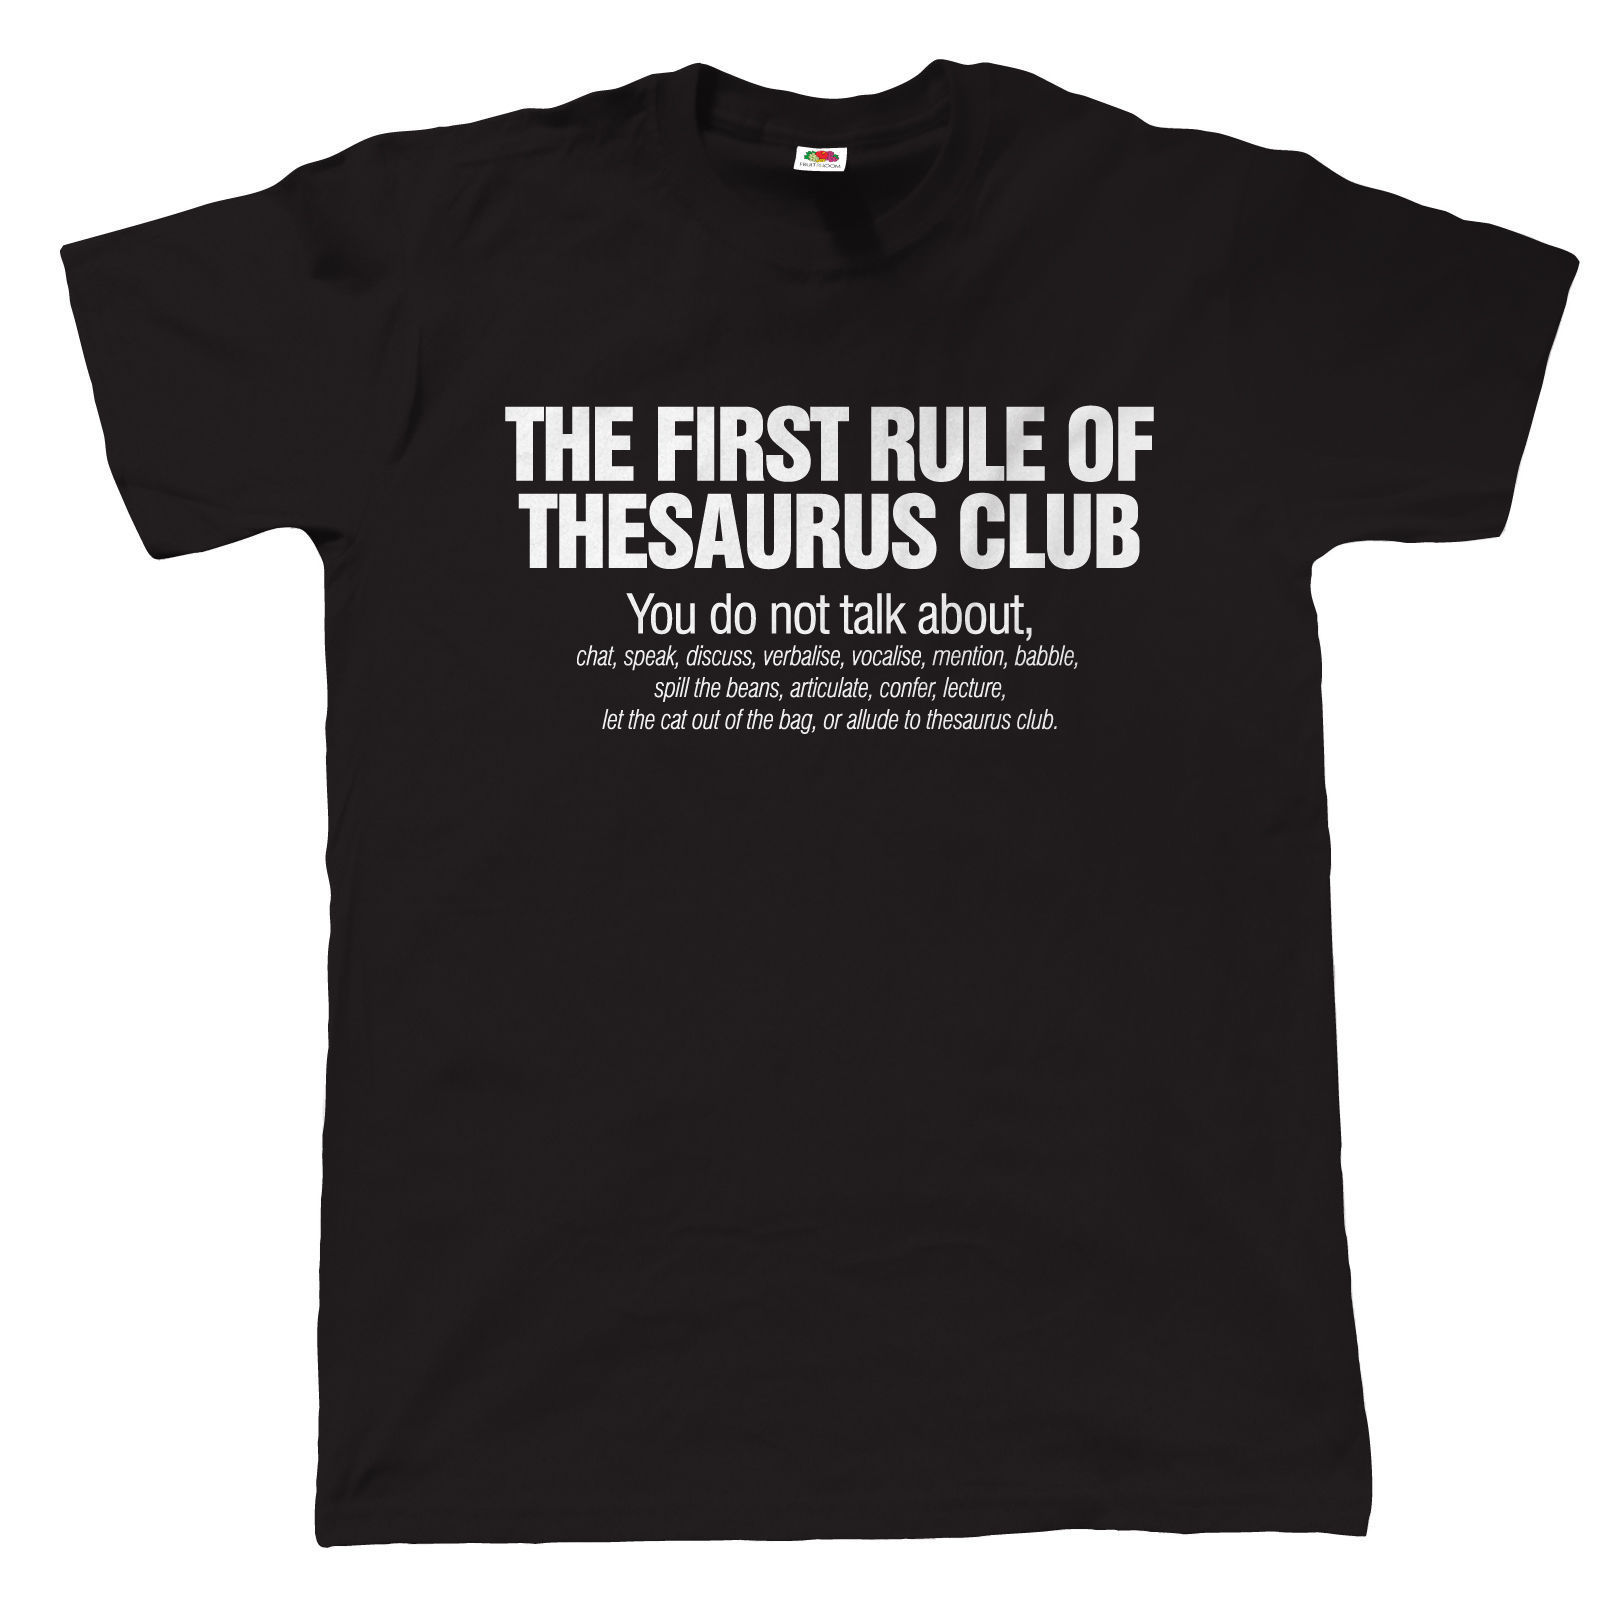 Thesaurus Club Mens Funny Movie T Shirt - Fathers Day Birthday Gift for Dad Joke Funny Tops Tee New Unisex Funny High Quality image